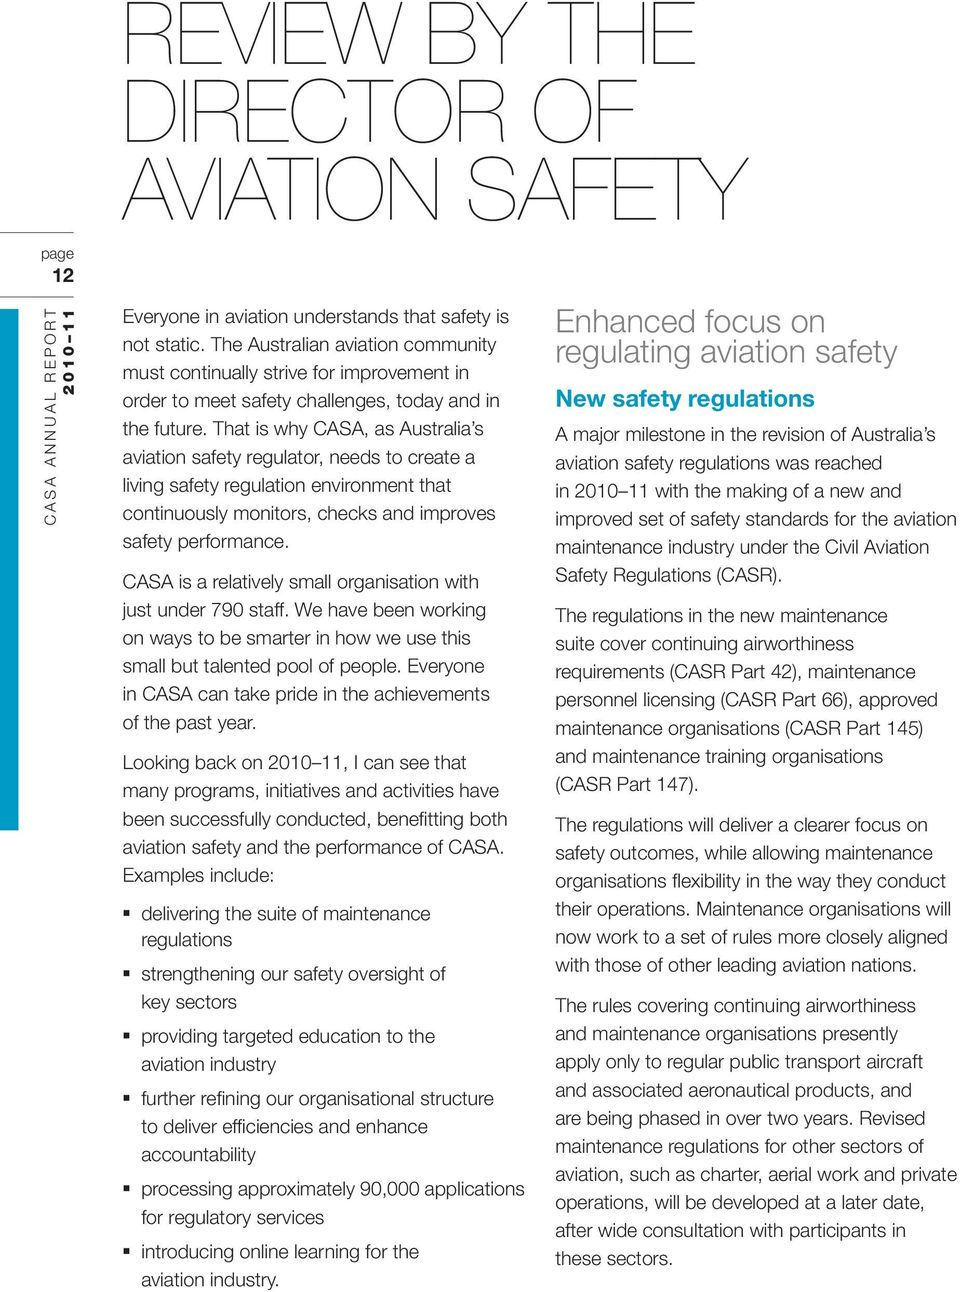 That is why CASA, as Australia s aviation safety regulator, needs to create a living safety regulation environment that continuously monitors, checks and improves safety performance.